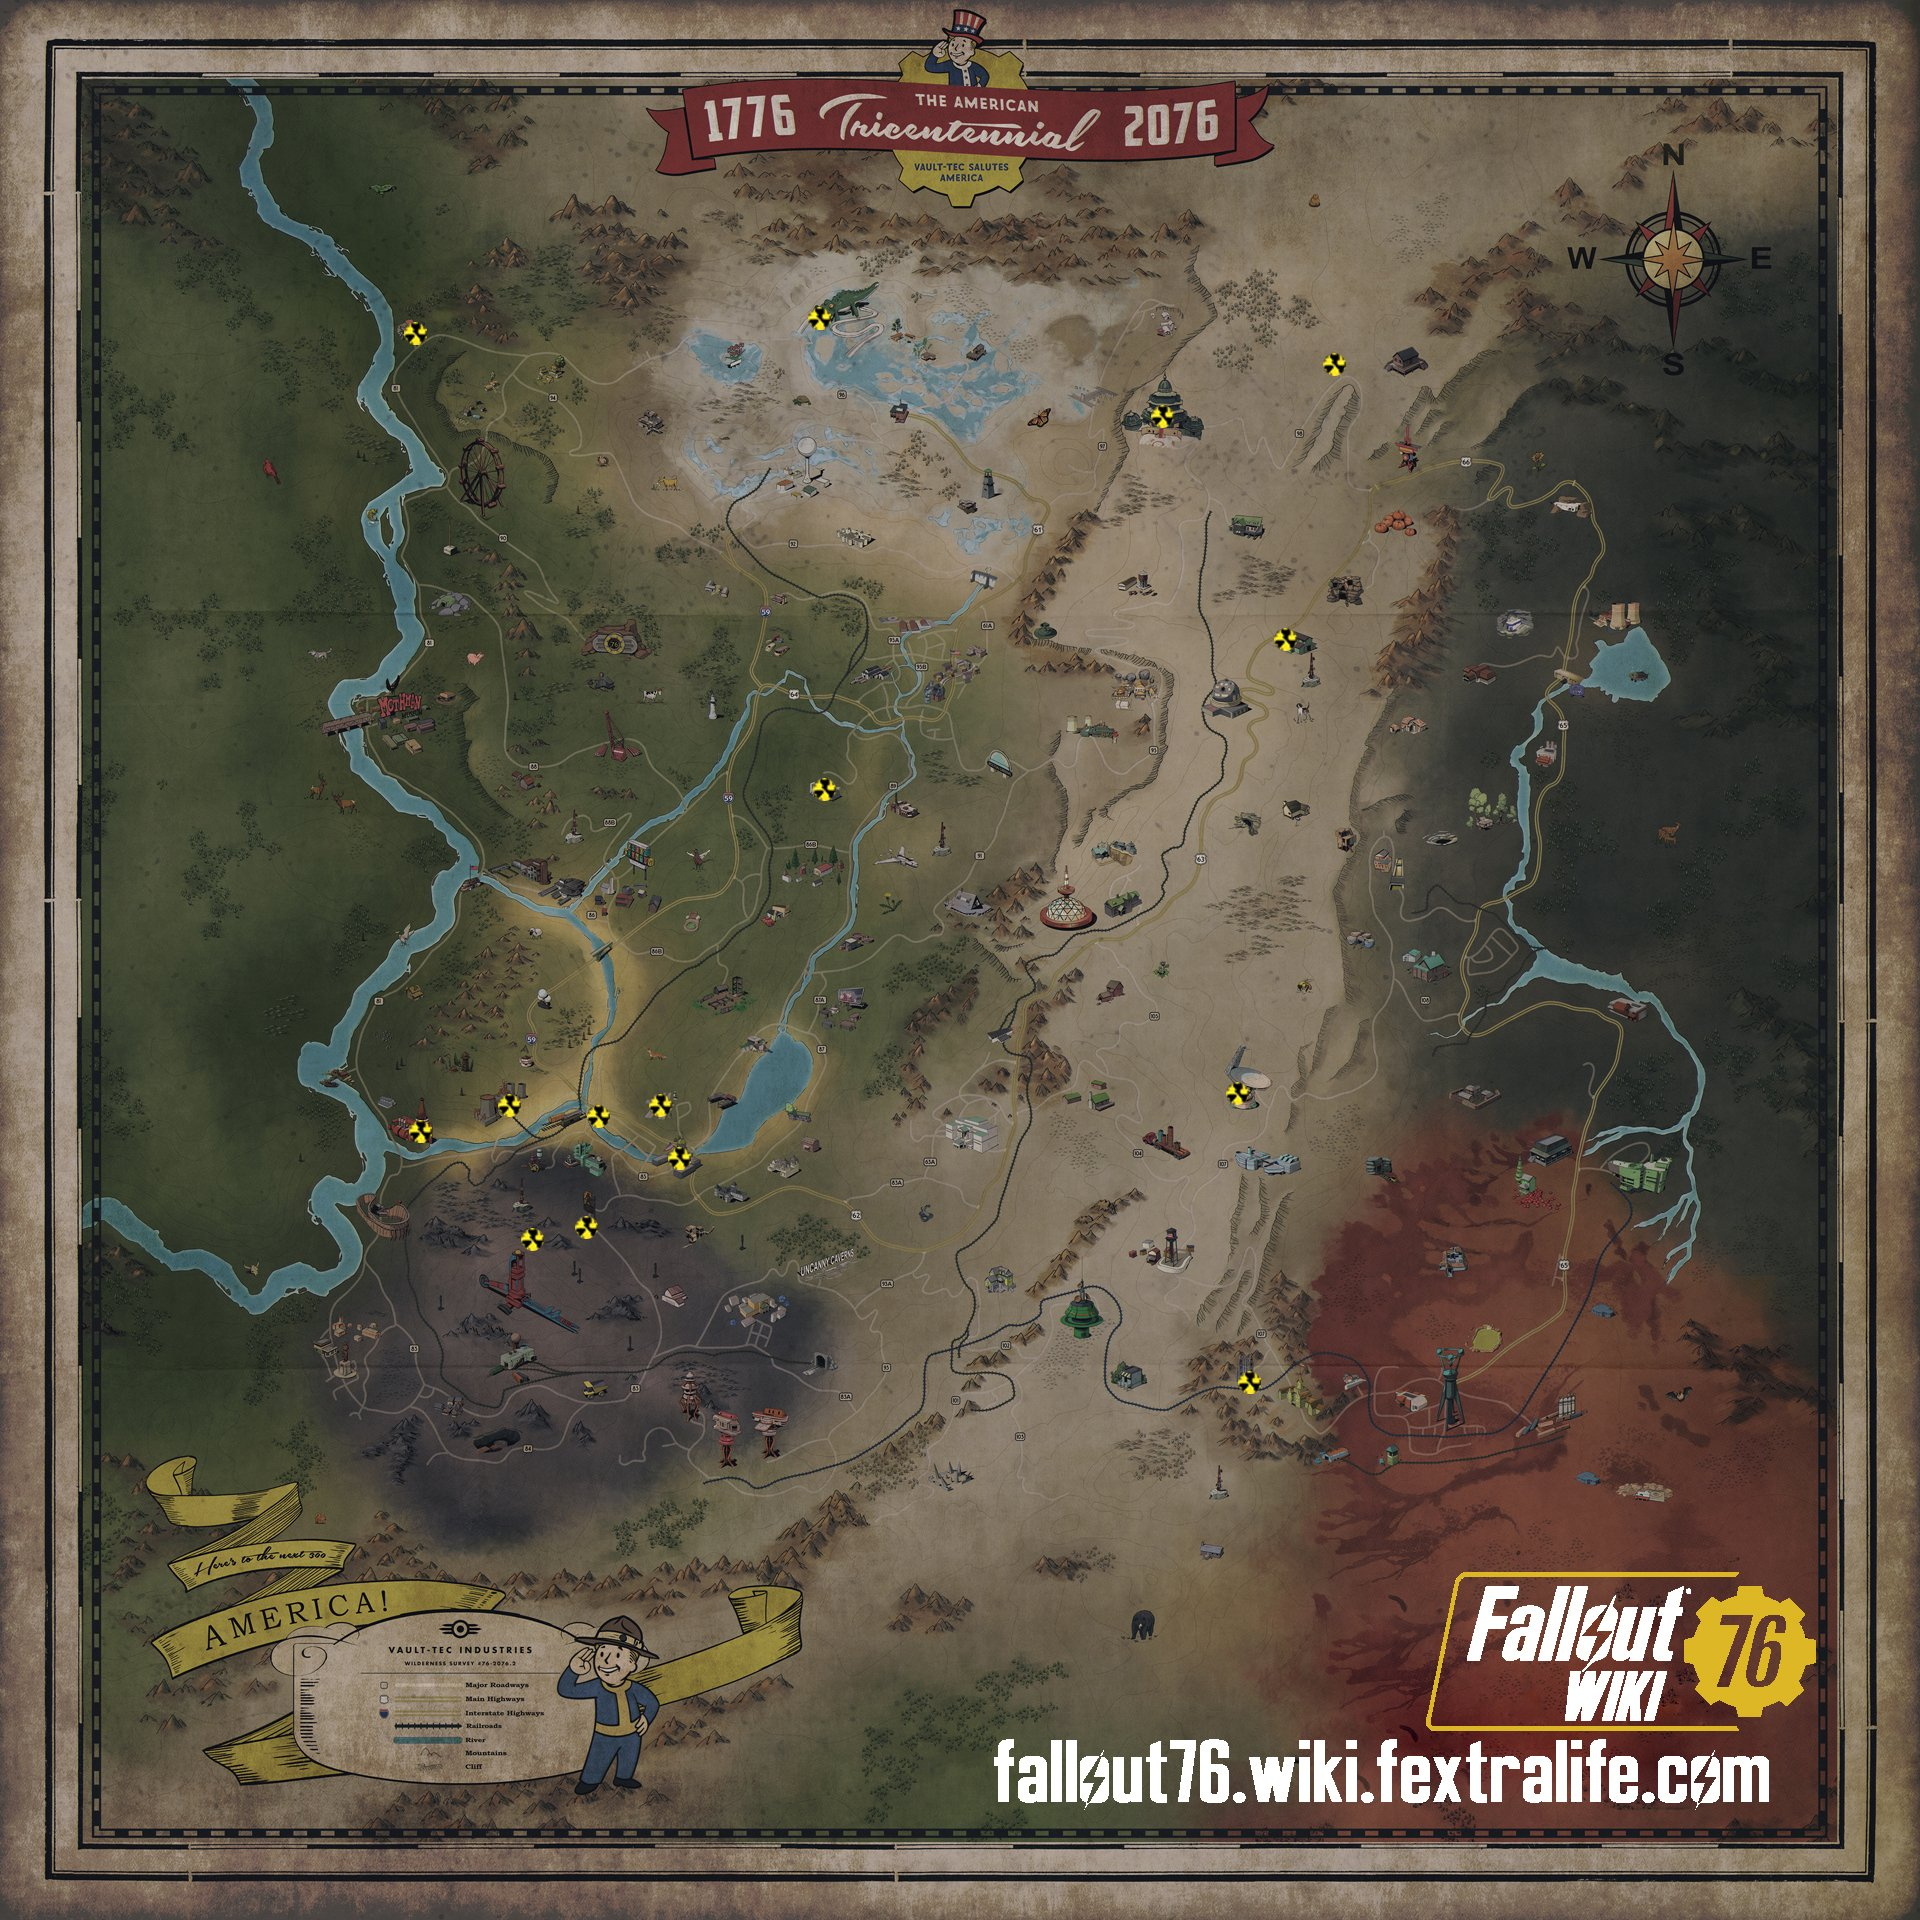 Fusion Core Generators | Fallout 76 Wiki on map design, map of london football stadiums, map indicator, map of road to success example, map dome light, map my neighborhood, map of chicago street names, map measuring tool, map map, map distance scale in miles, map of nigerian states and capitals, map of queensland, map downloader, map app, map of ancient roman world, map of an imaginary island, map of faerun 4th edition, map creator, map of world government types, map of different names of soft drinks,